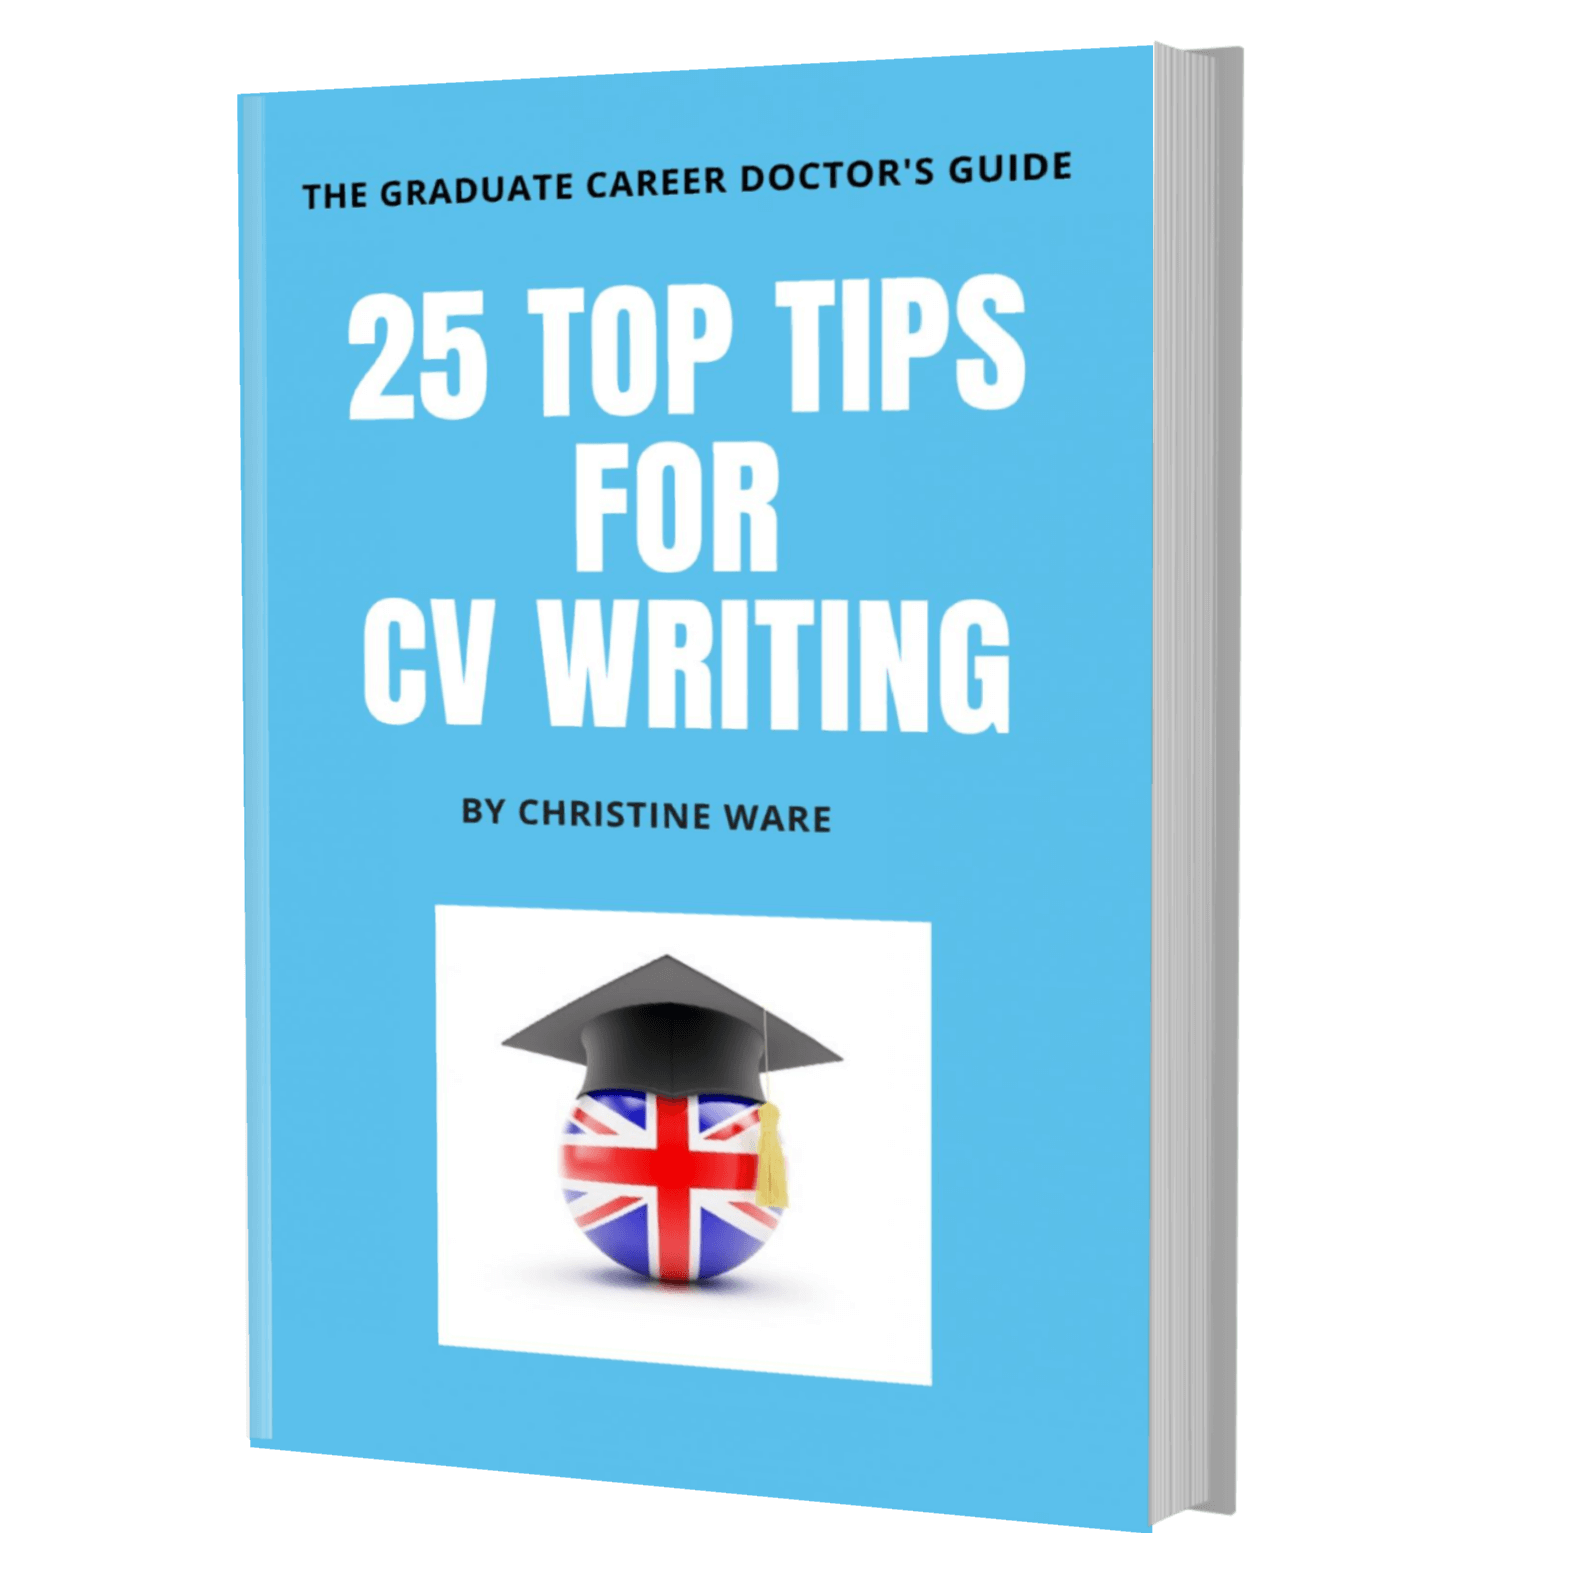 25 Top Tips for CV Writing